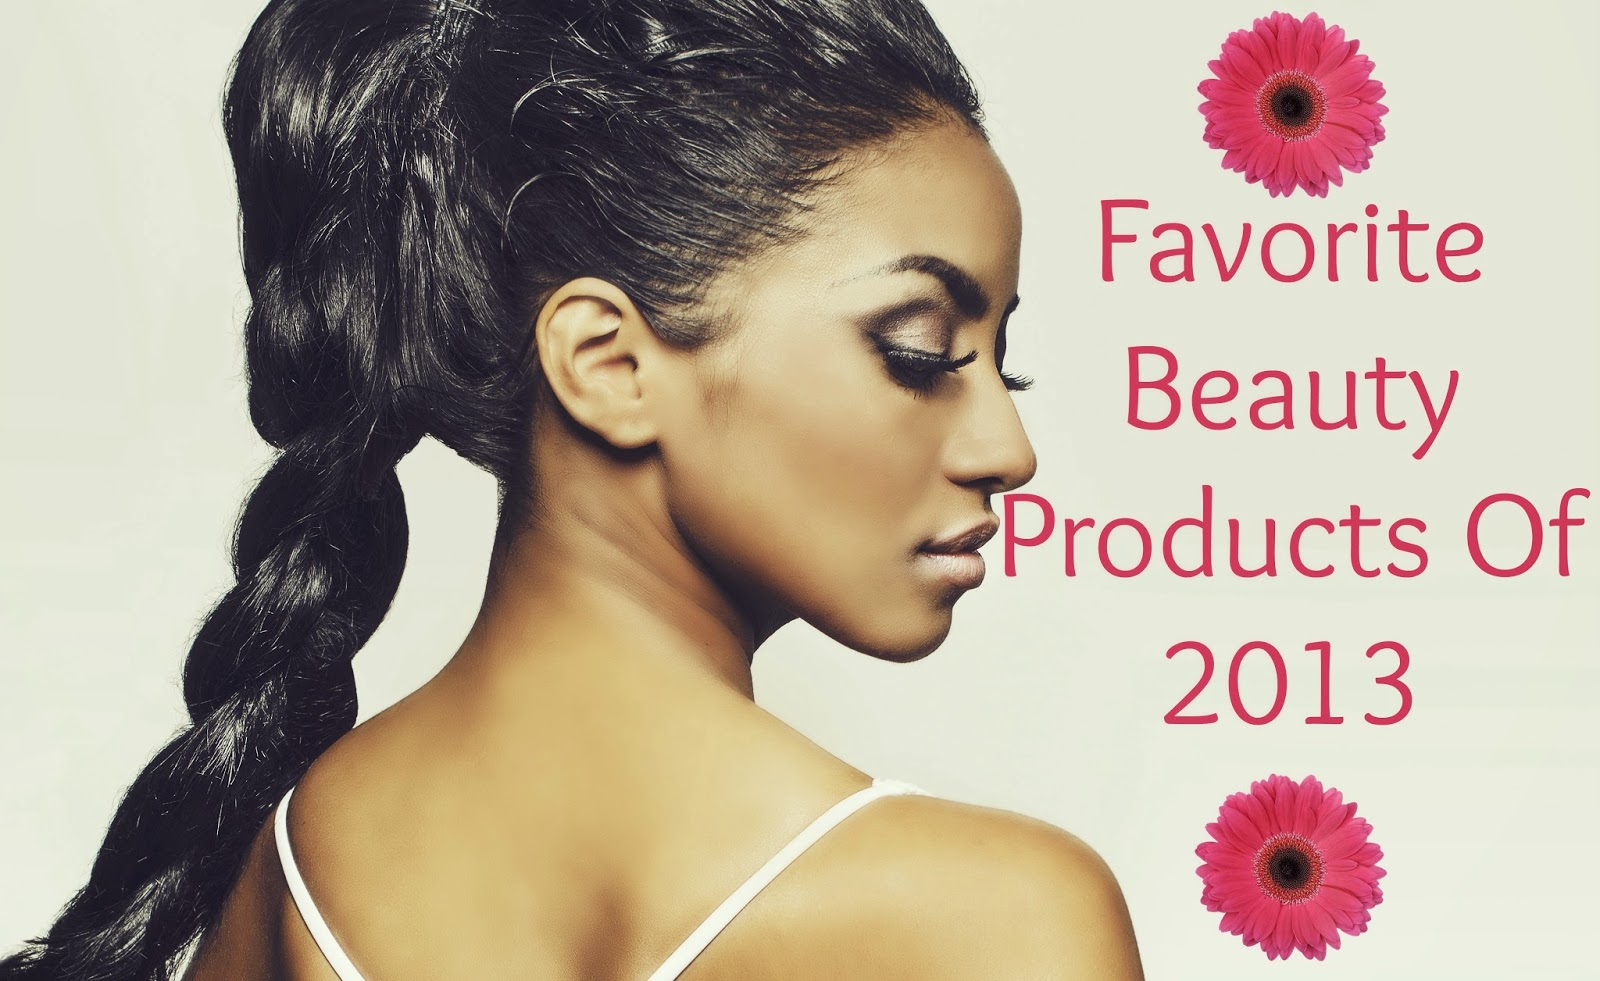 Favorite Beauty Products Of 2013